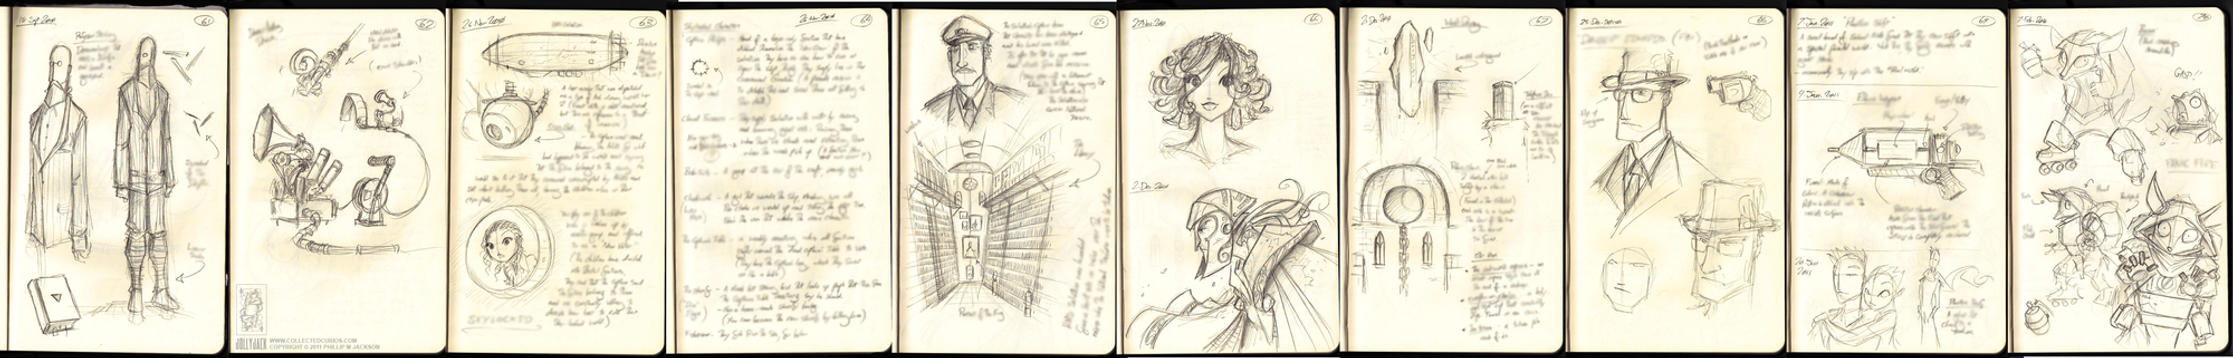 Moleskine Sketches 7 by jollyjack